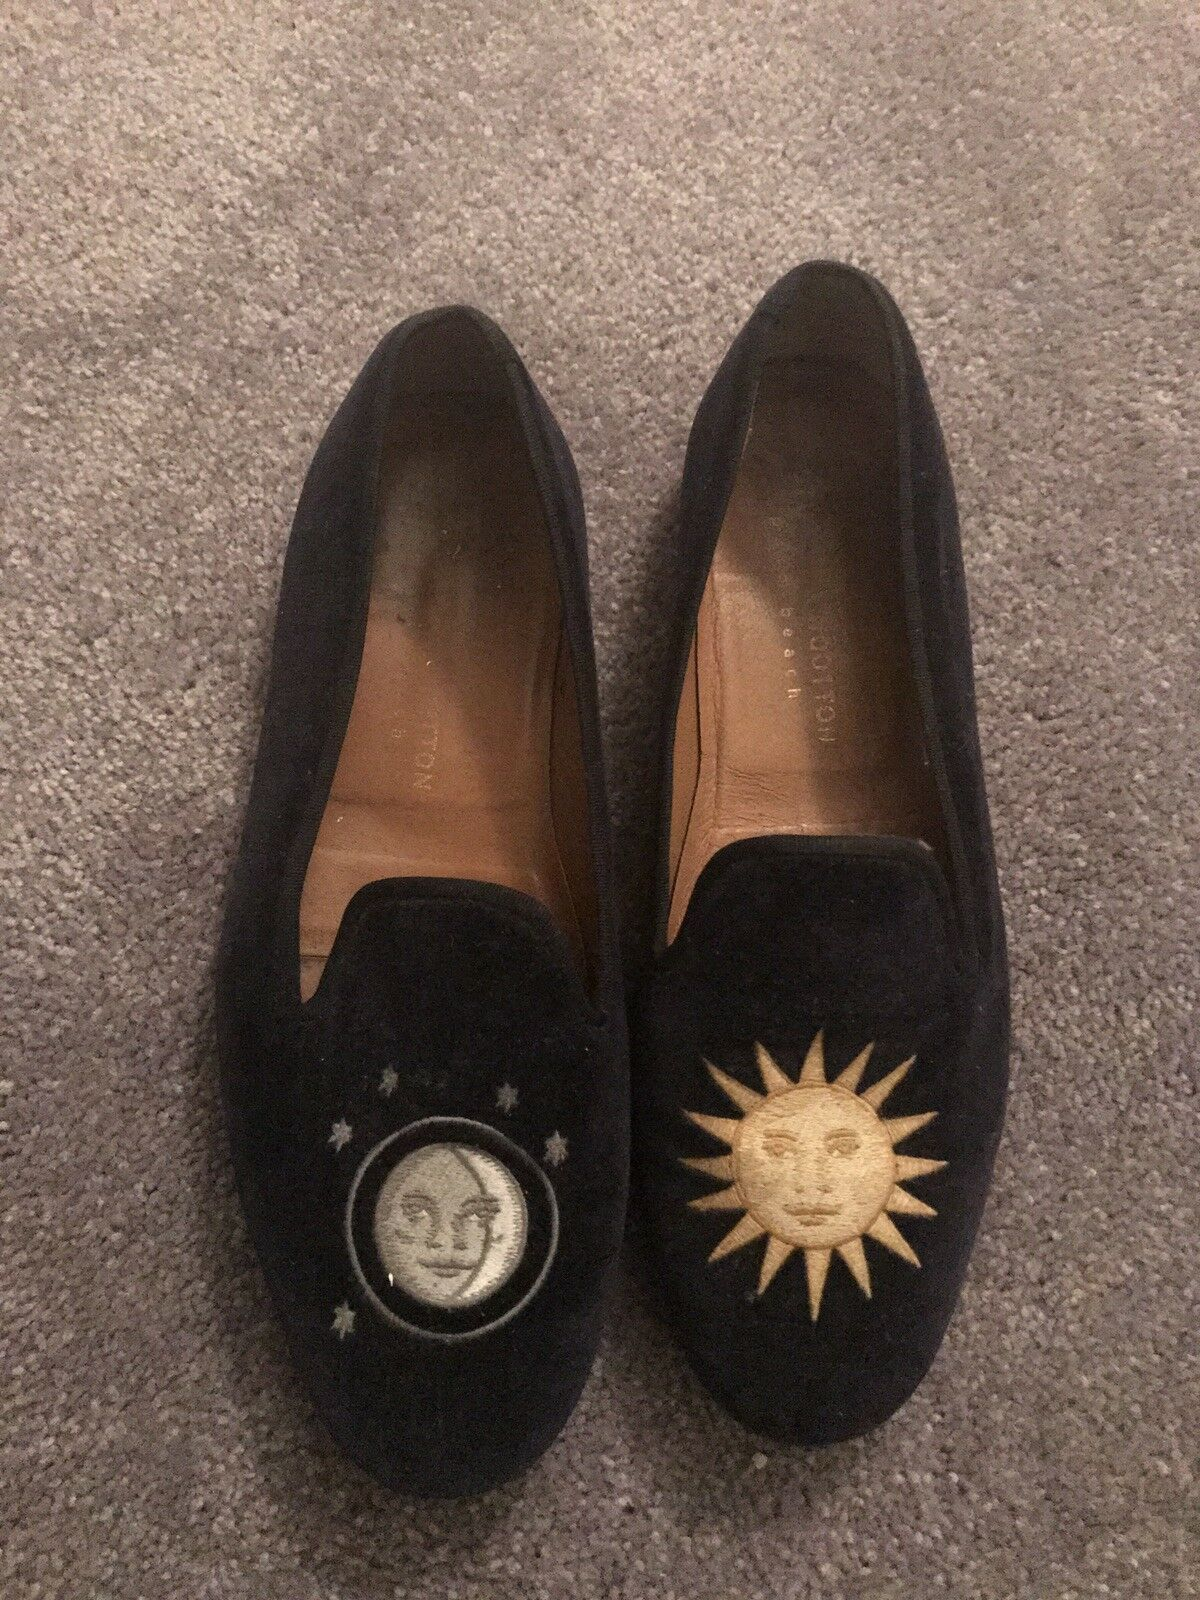 Stubbs and Wootton Velvet  LEOPARD  Slippers Loafers shoes